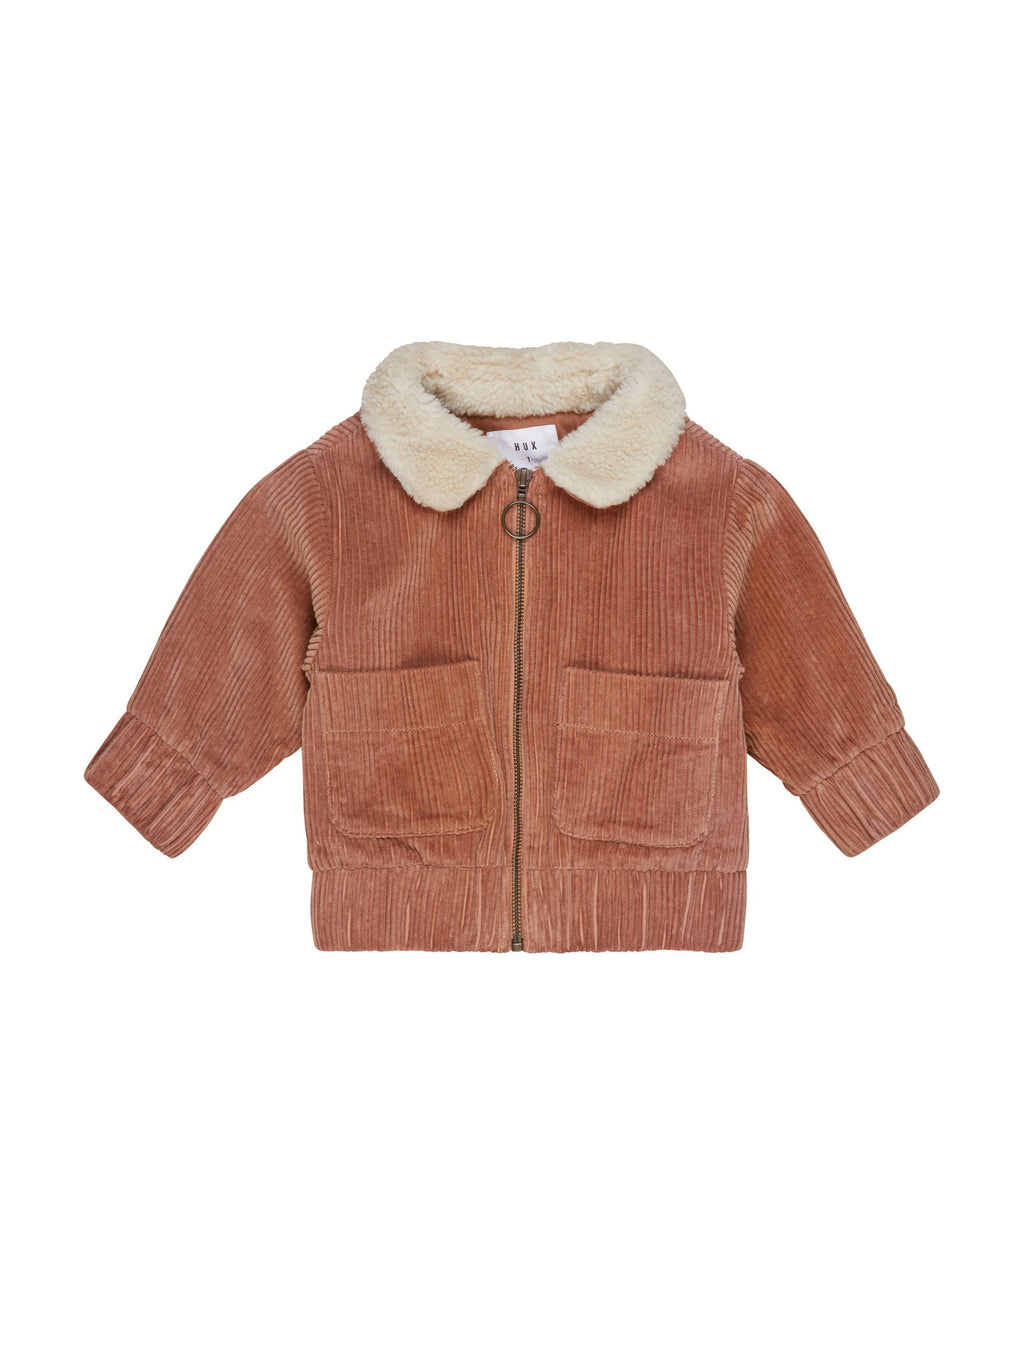 Huxbaby That 70's Jacket - HB1814